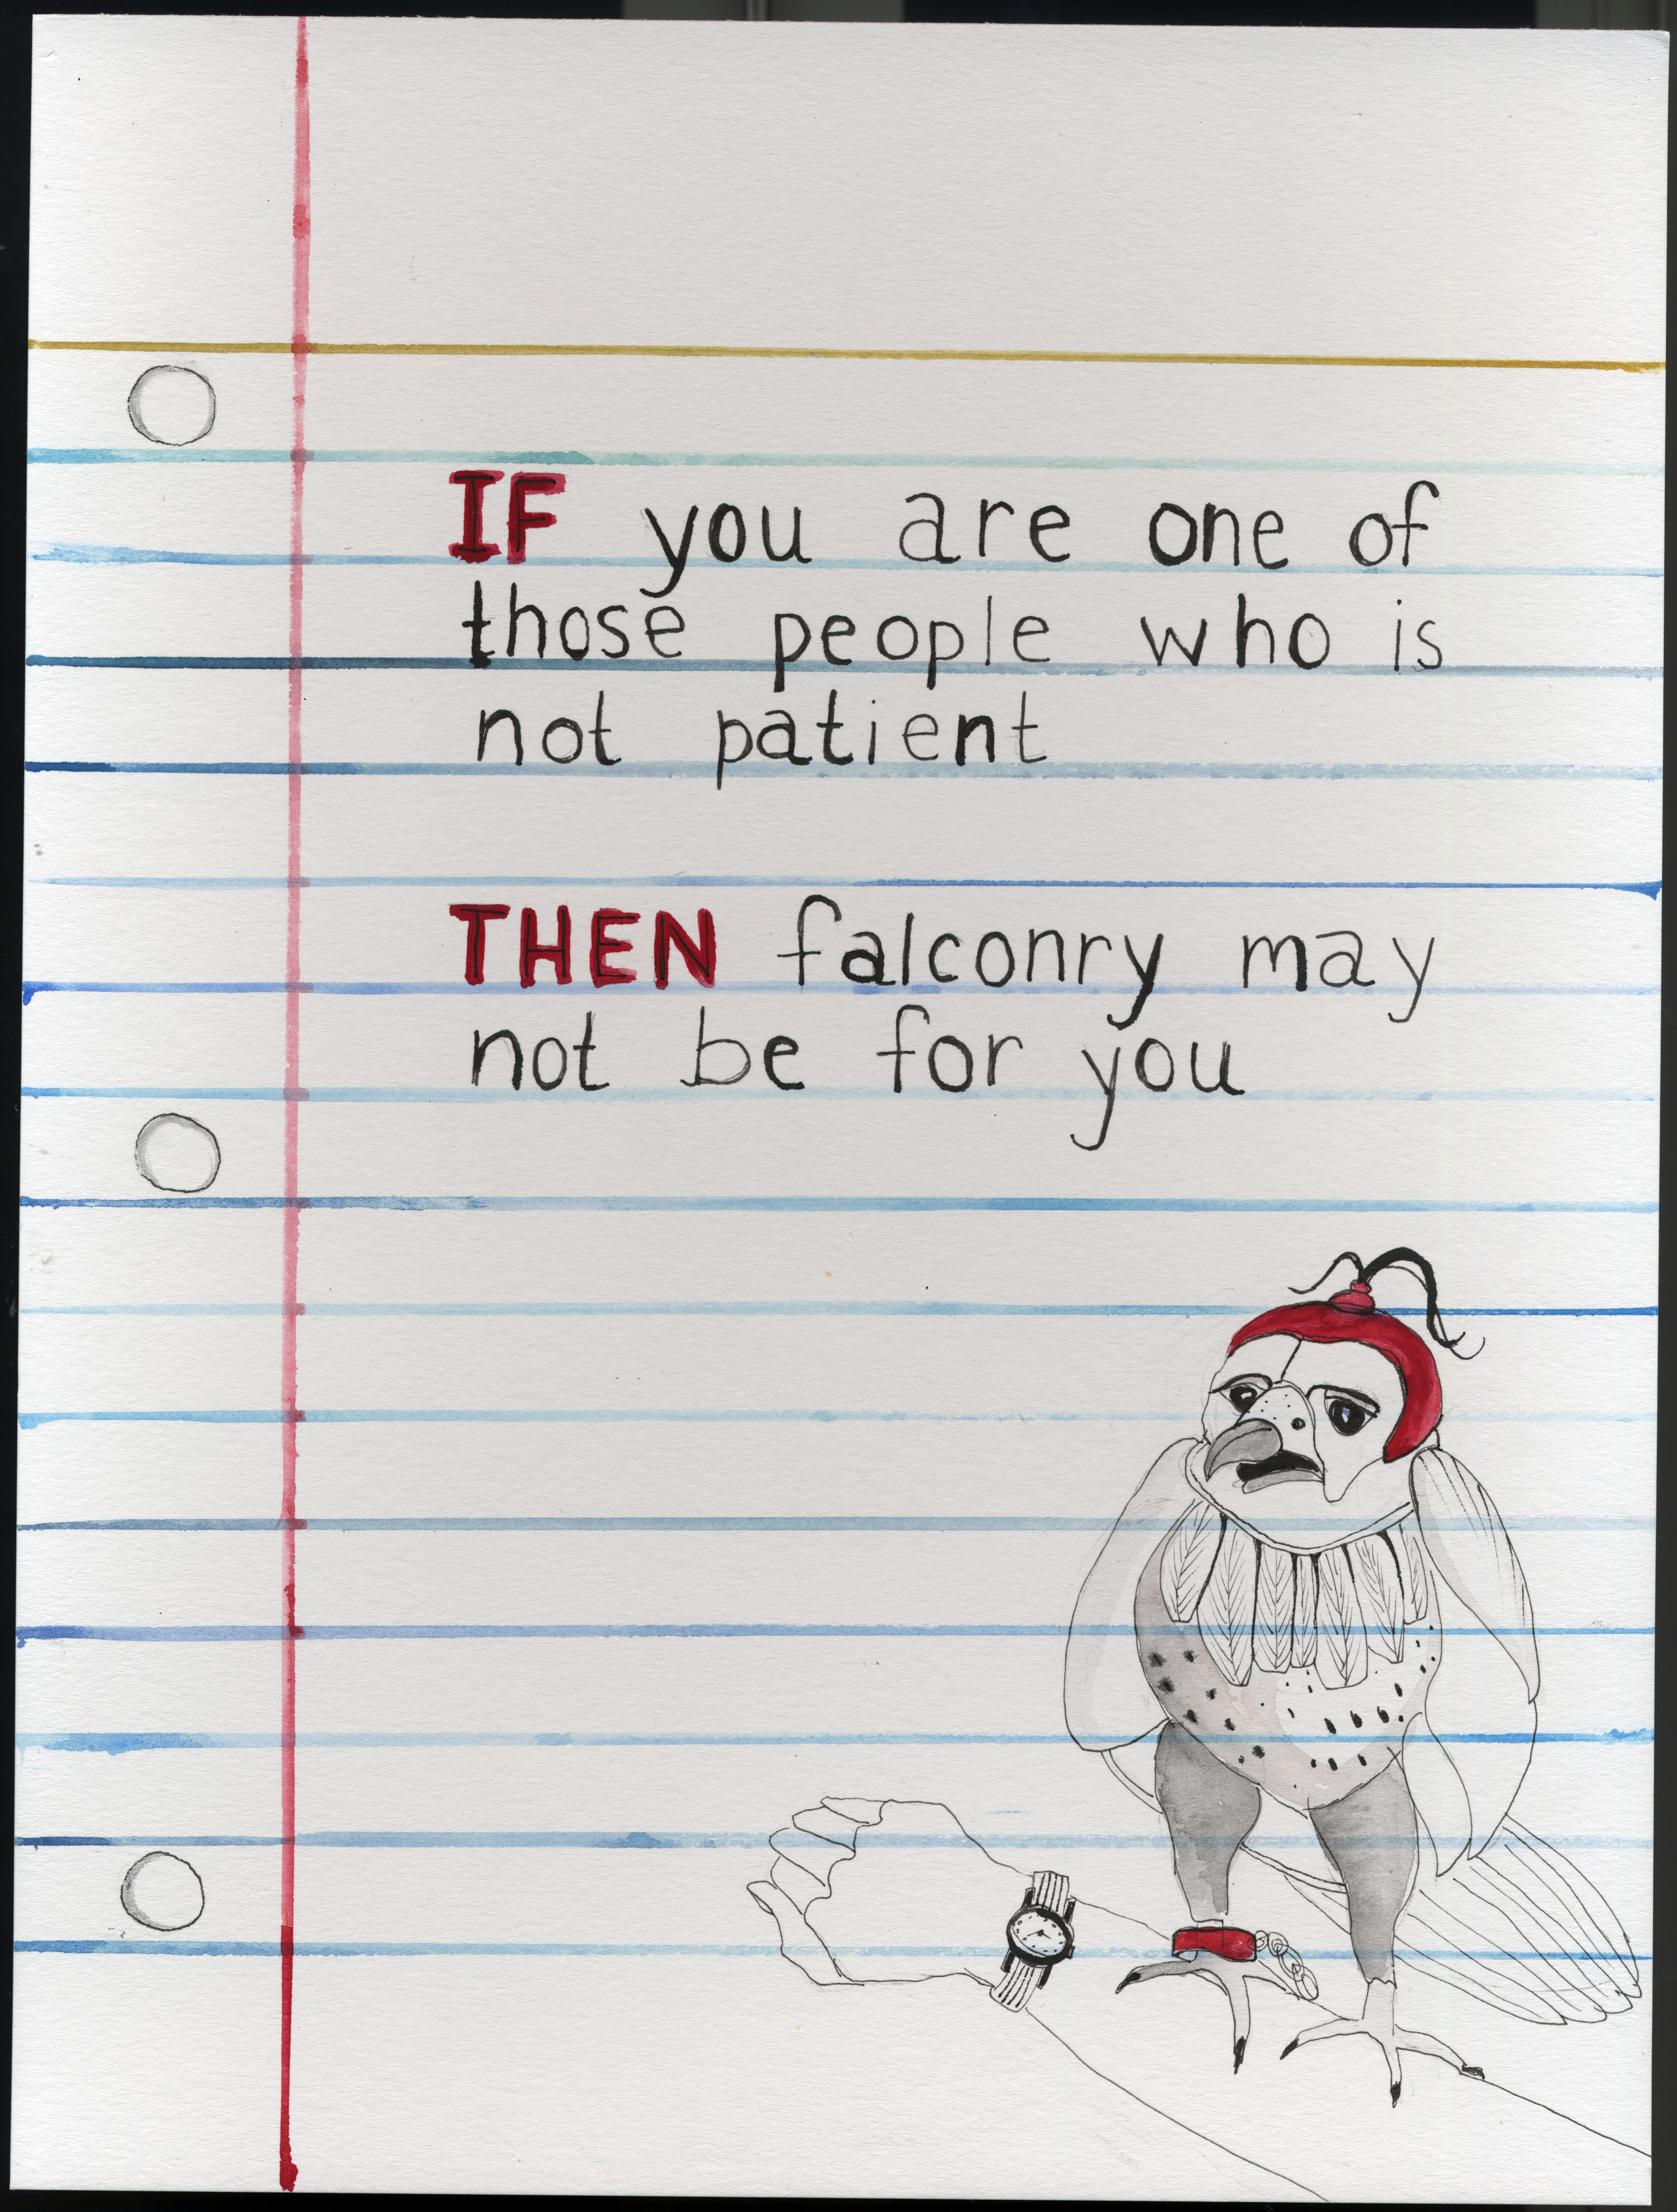 IF/THEN - Falconry